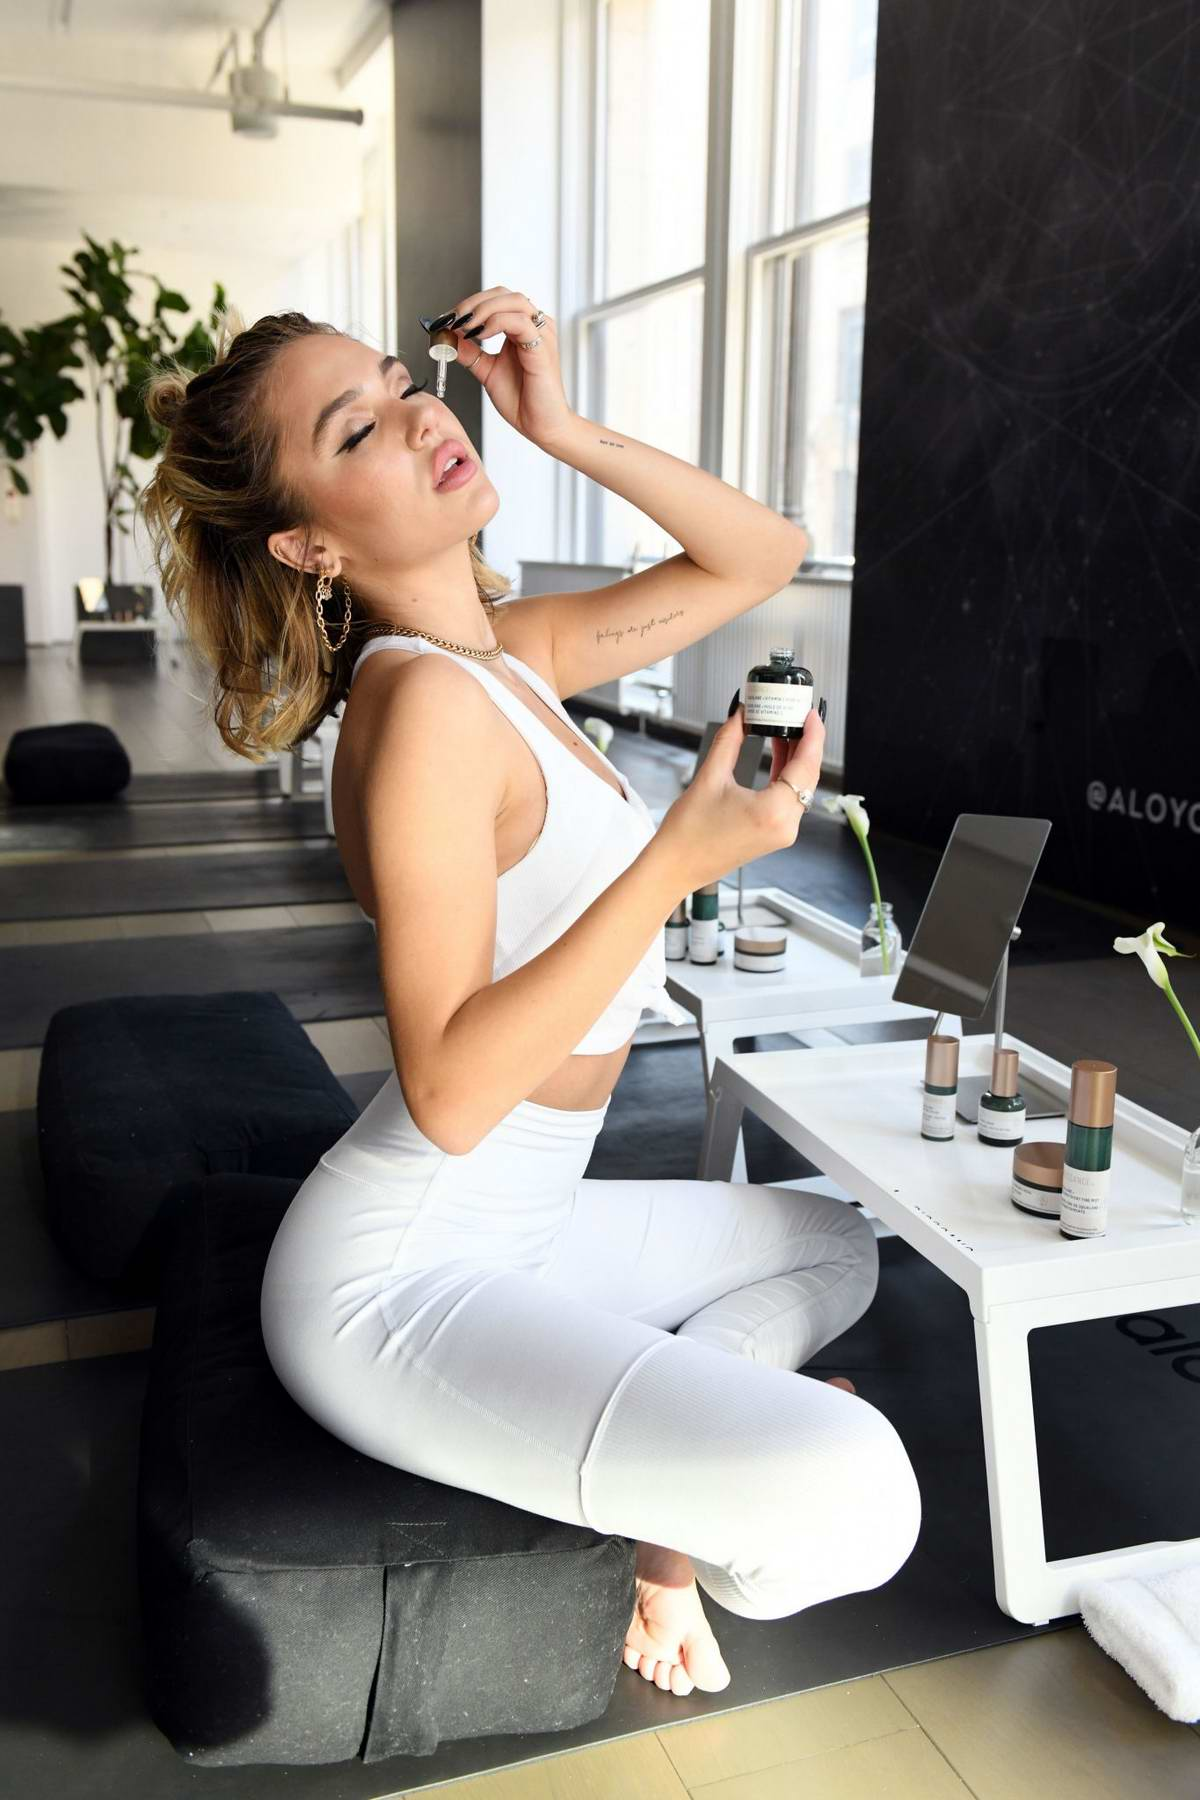 Delilah Belle Hamlin At Flow Into Fashion Week With